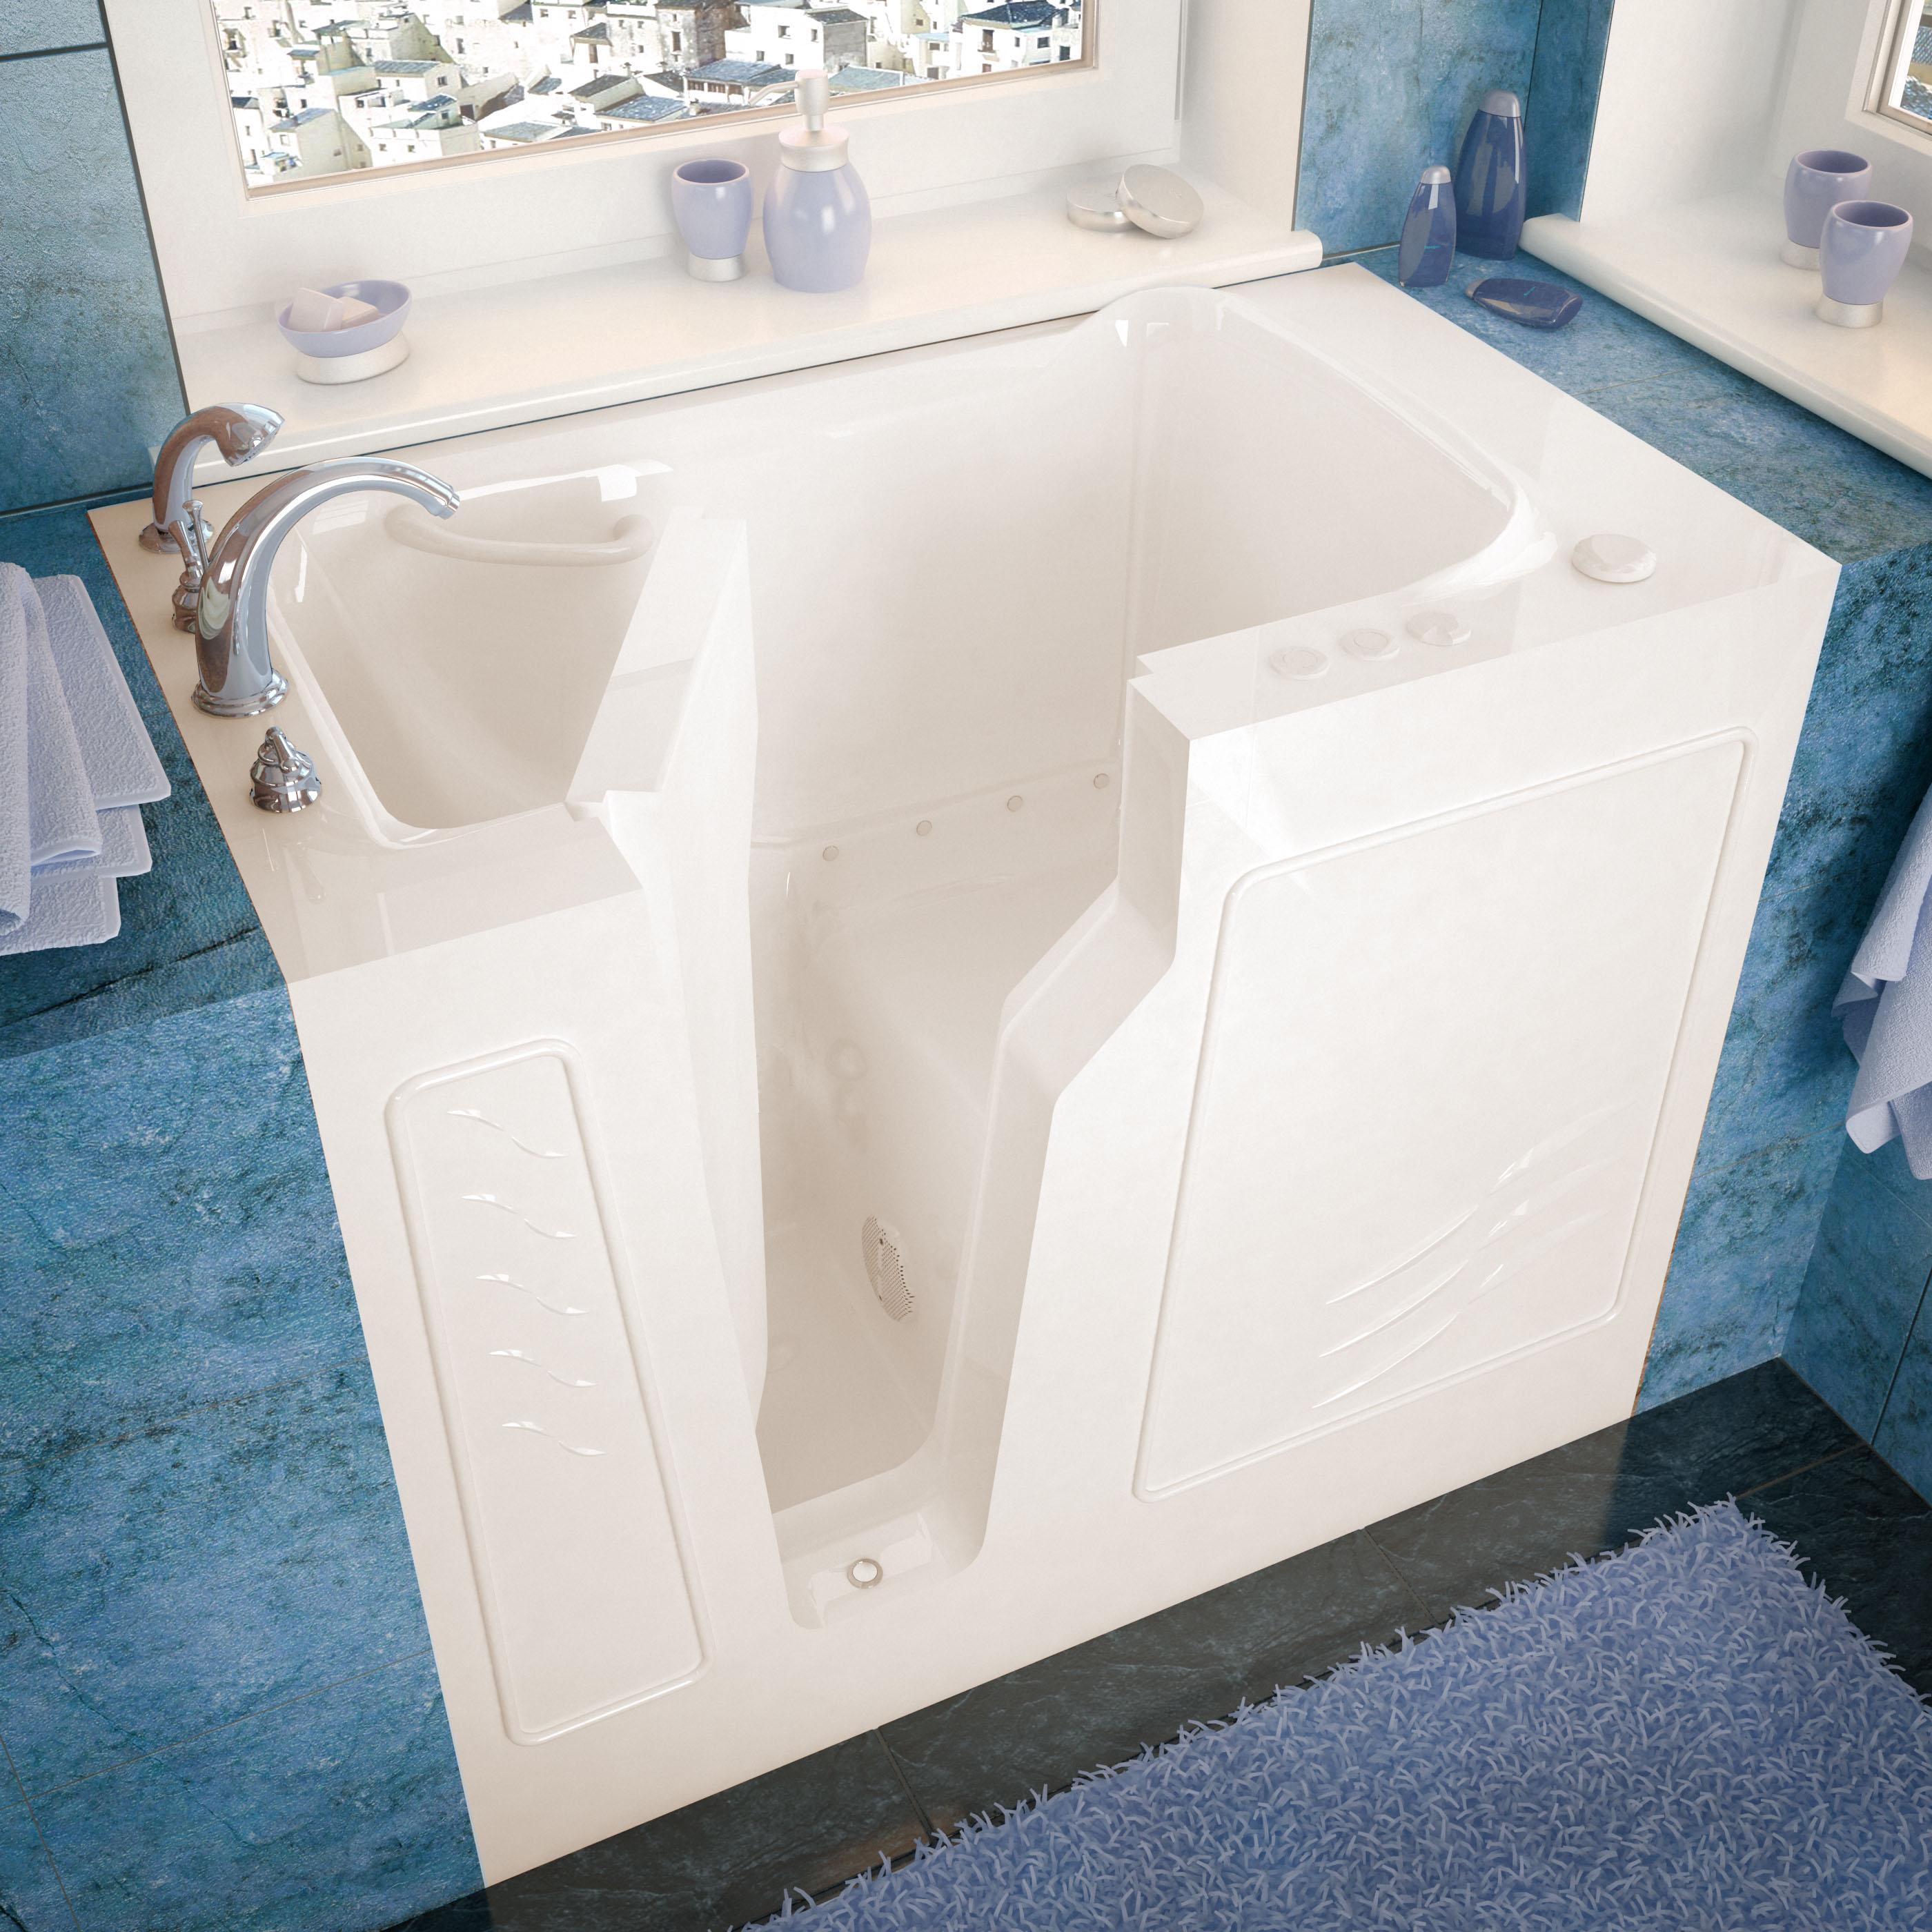 26x46 Left Drain Biscuit Air Jetted Walk-In Bathtub